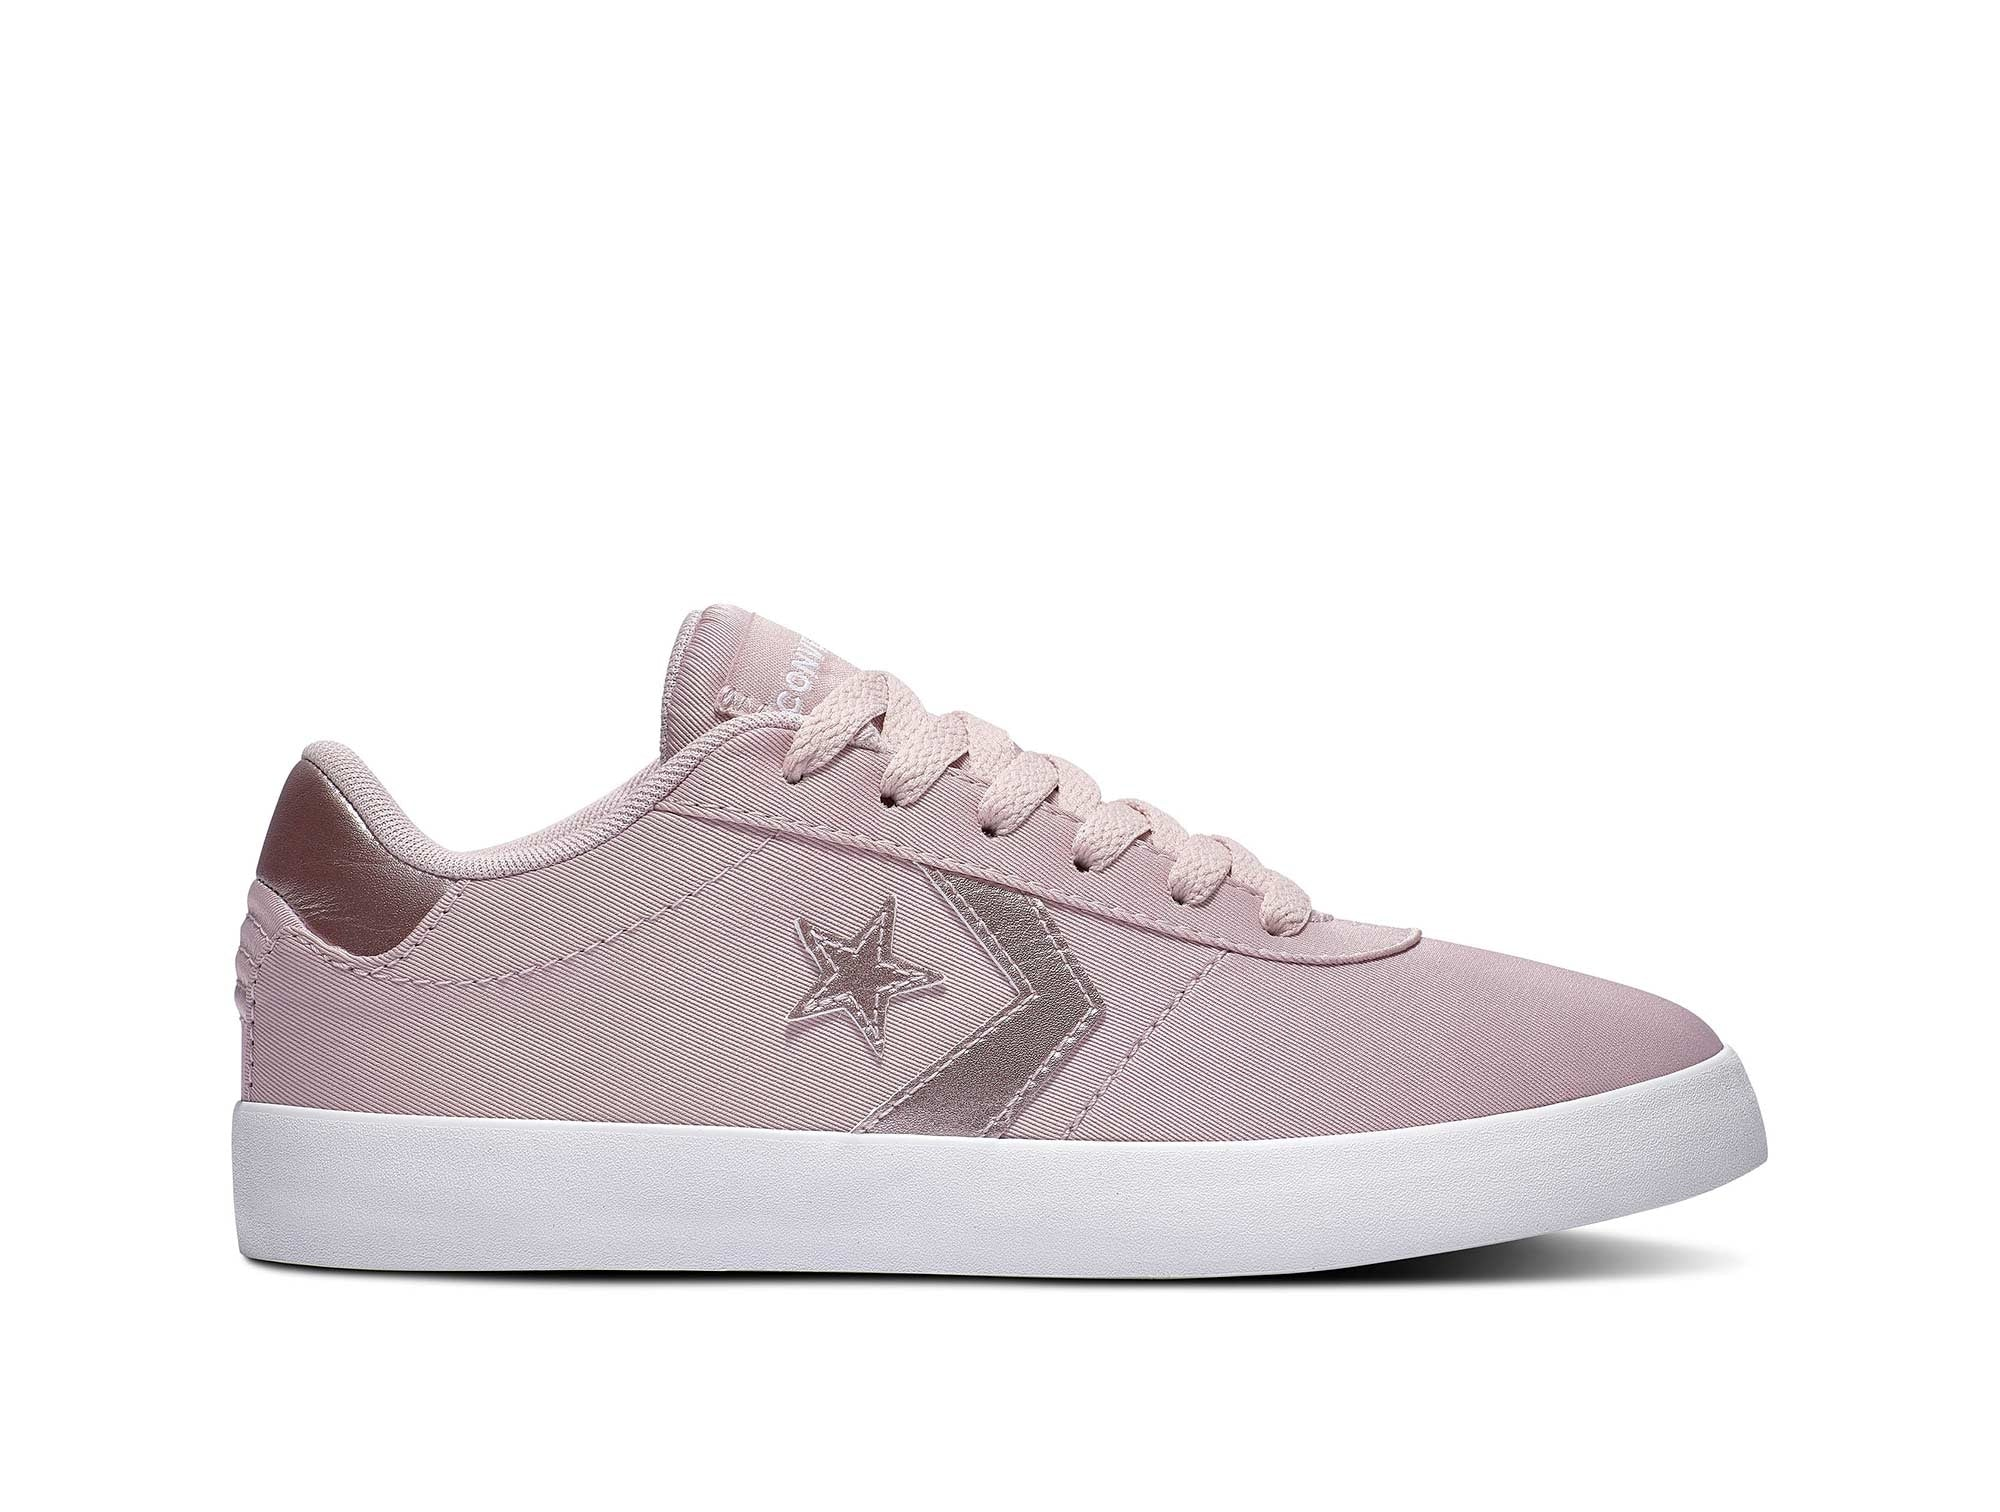 Zapatilla Converse Point Star Mujer